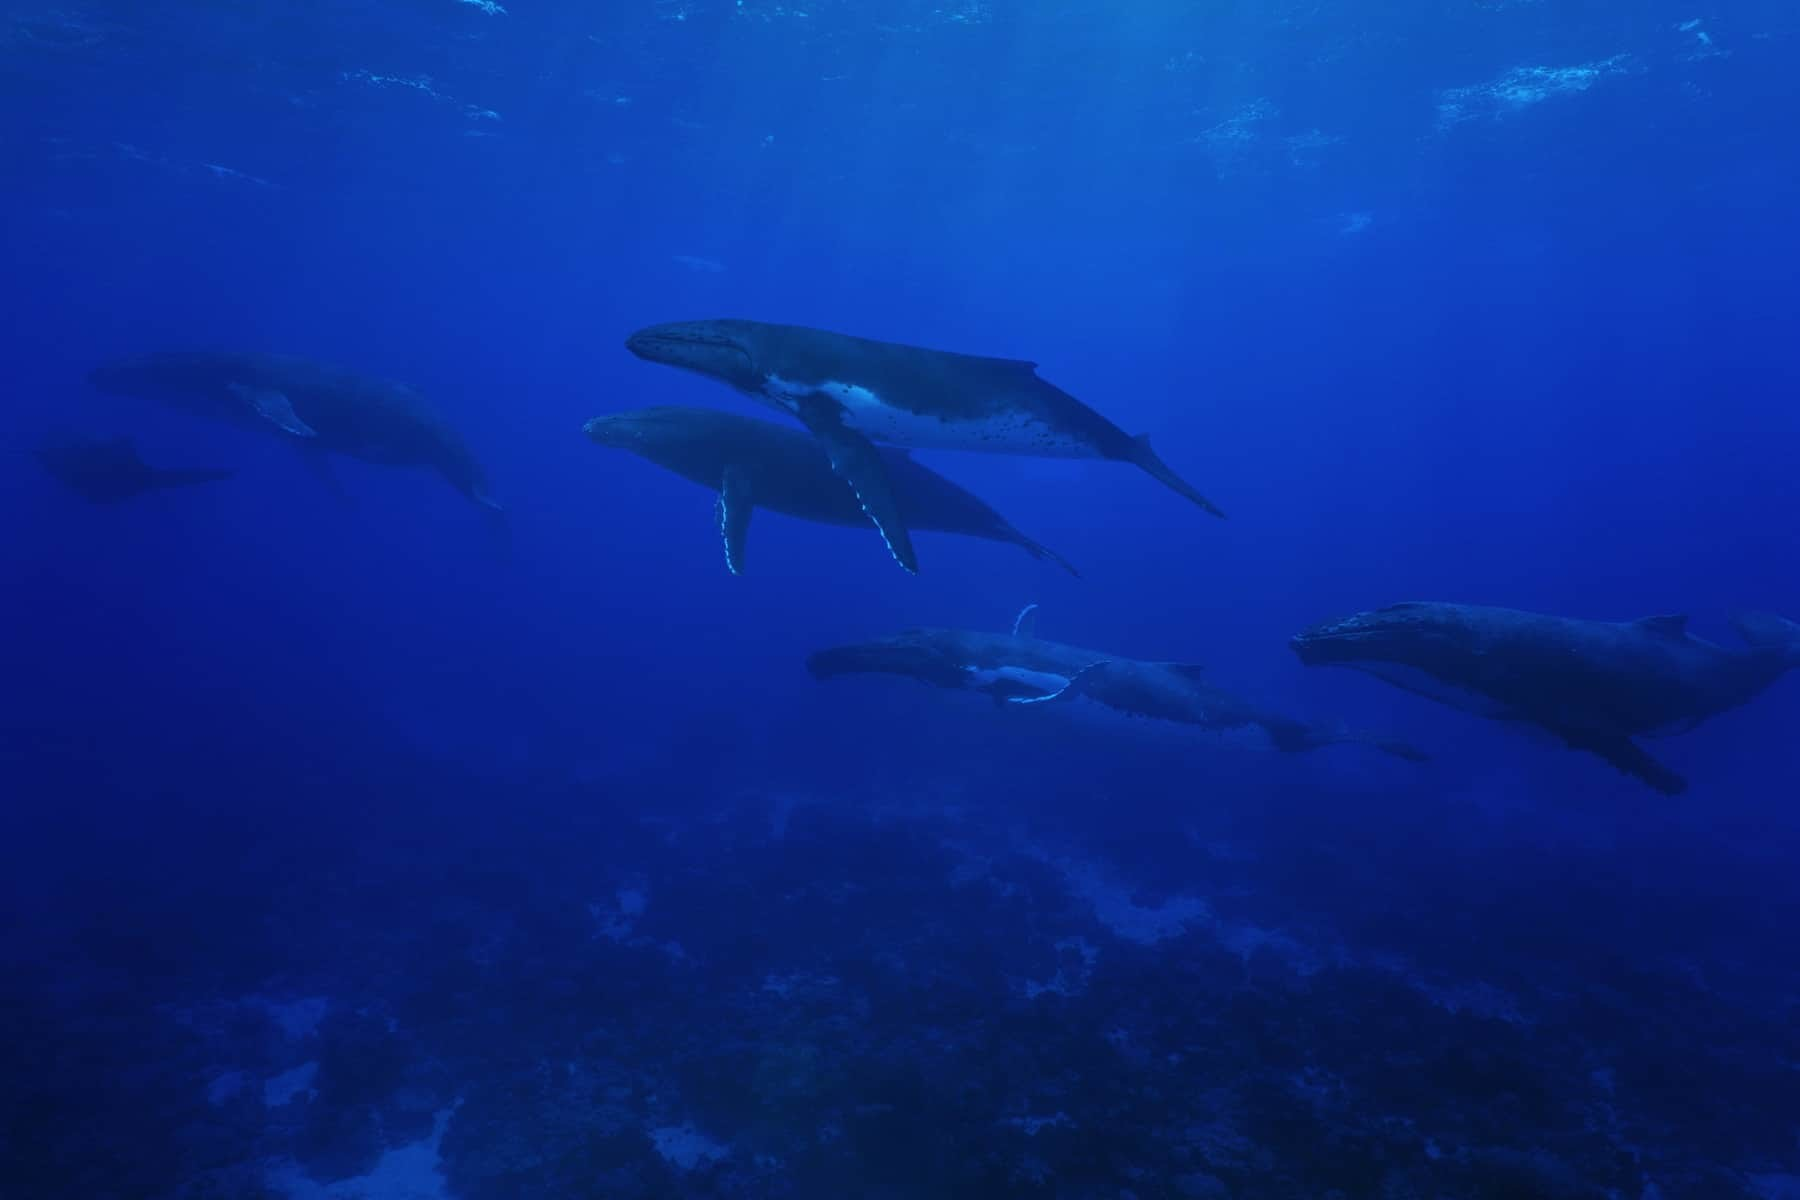 Group of humpback whales, Megaptera novaeangliae, underwater in the Pacific ocean, Rurutu island, Austral archipelago, French Polynesia